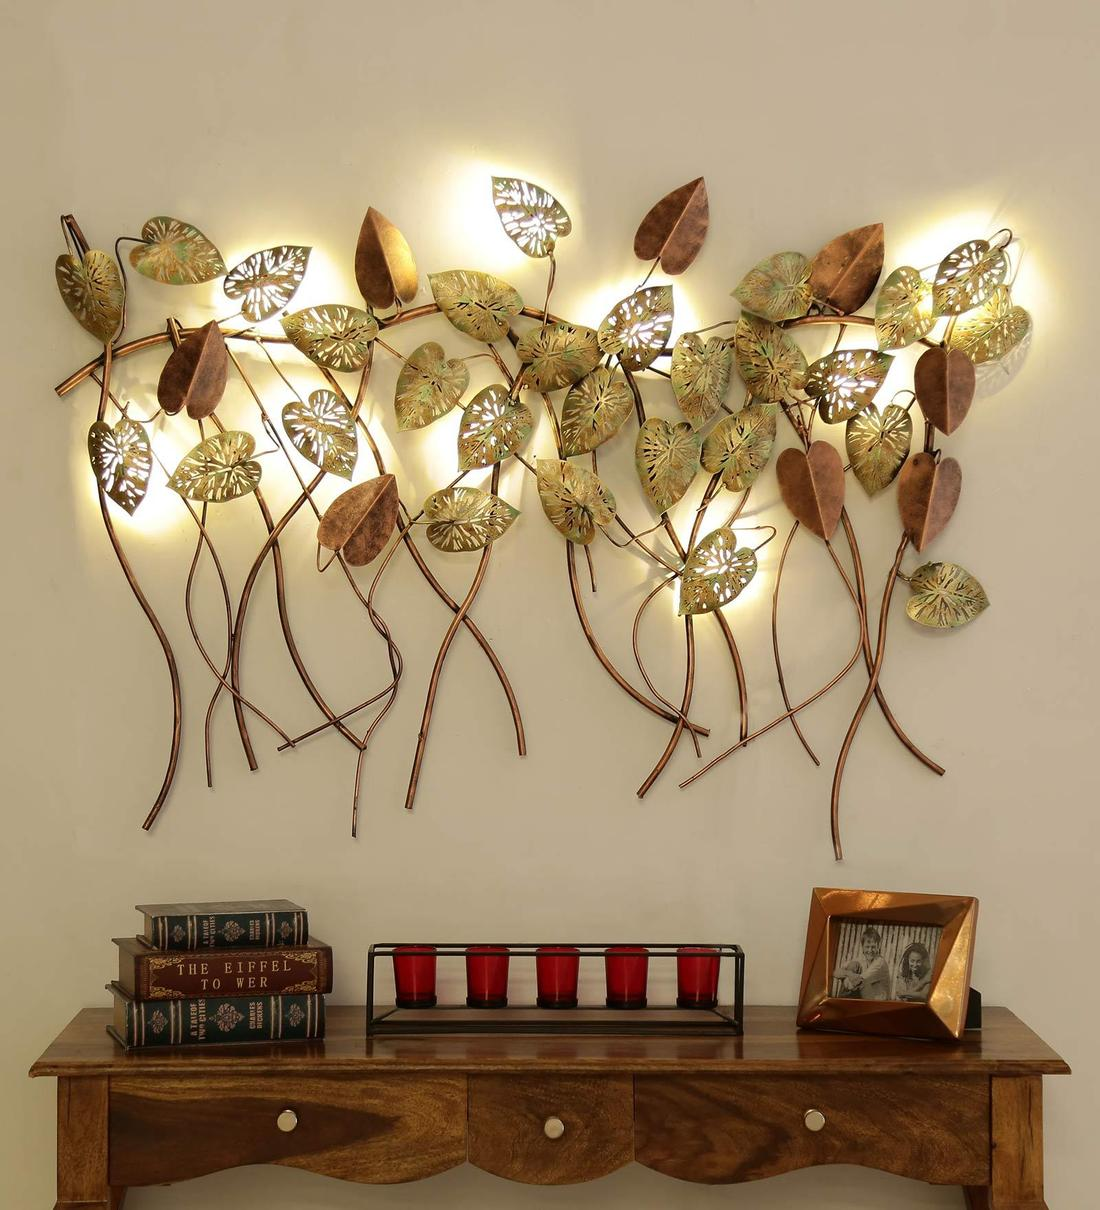 Buy Wrought Iron Hanging Leaf In Golden With Led Wall Art By Malik Design Online Floral Metal Art Metal Wall Art Home Decor Pepperfry Product